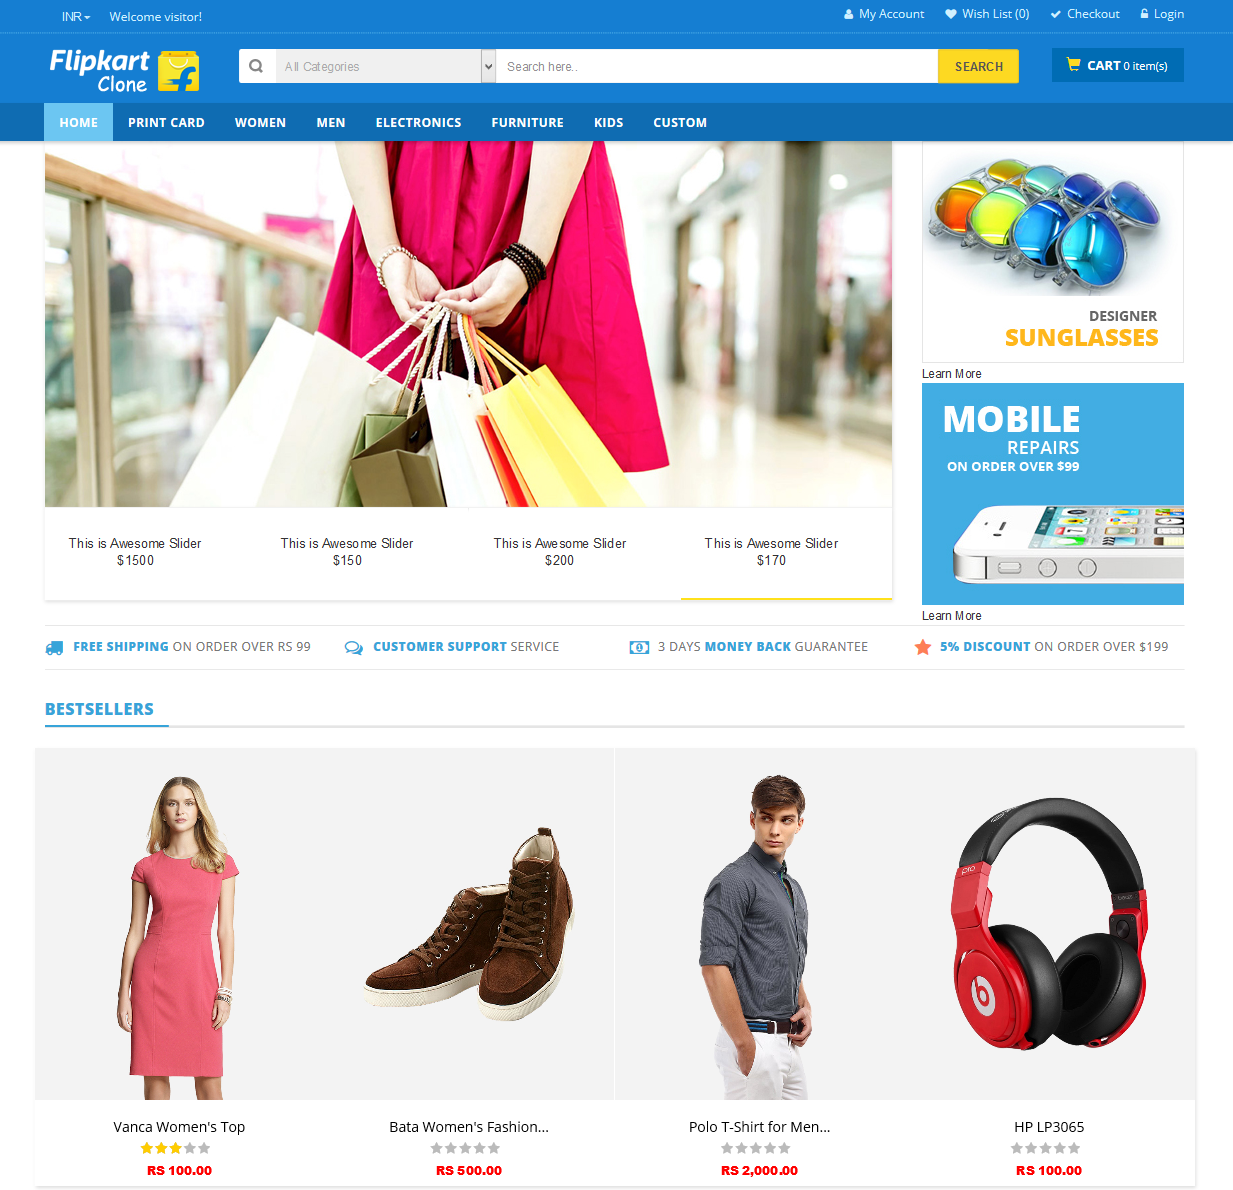 flipkart-user-homepage